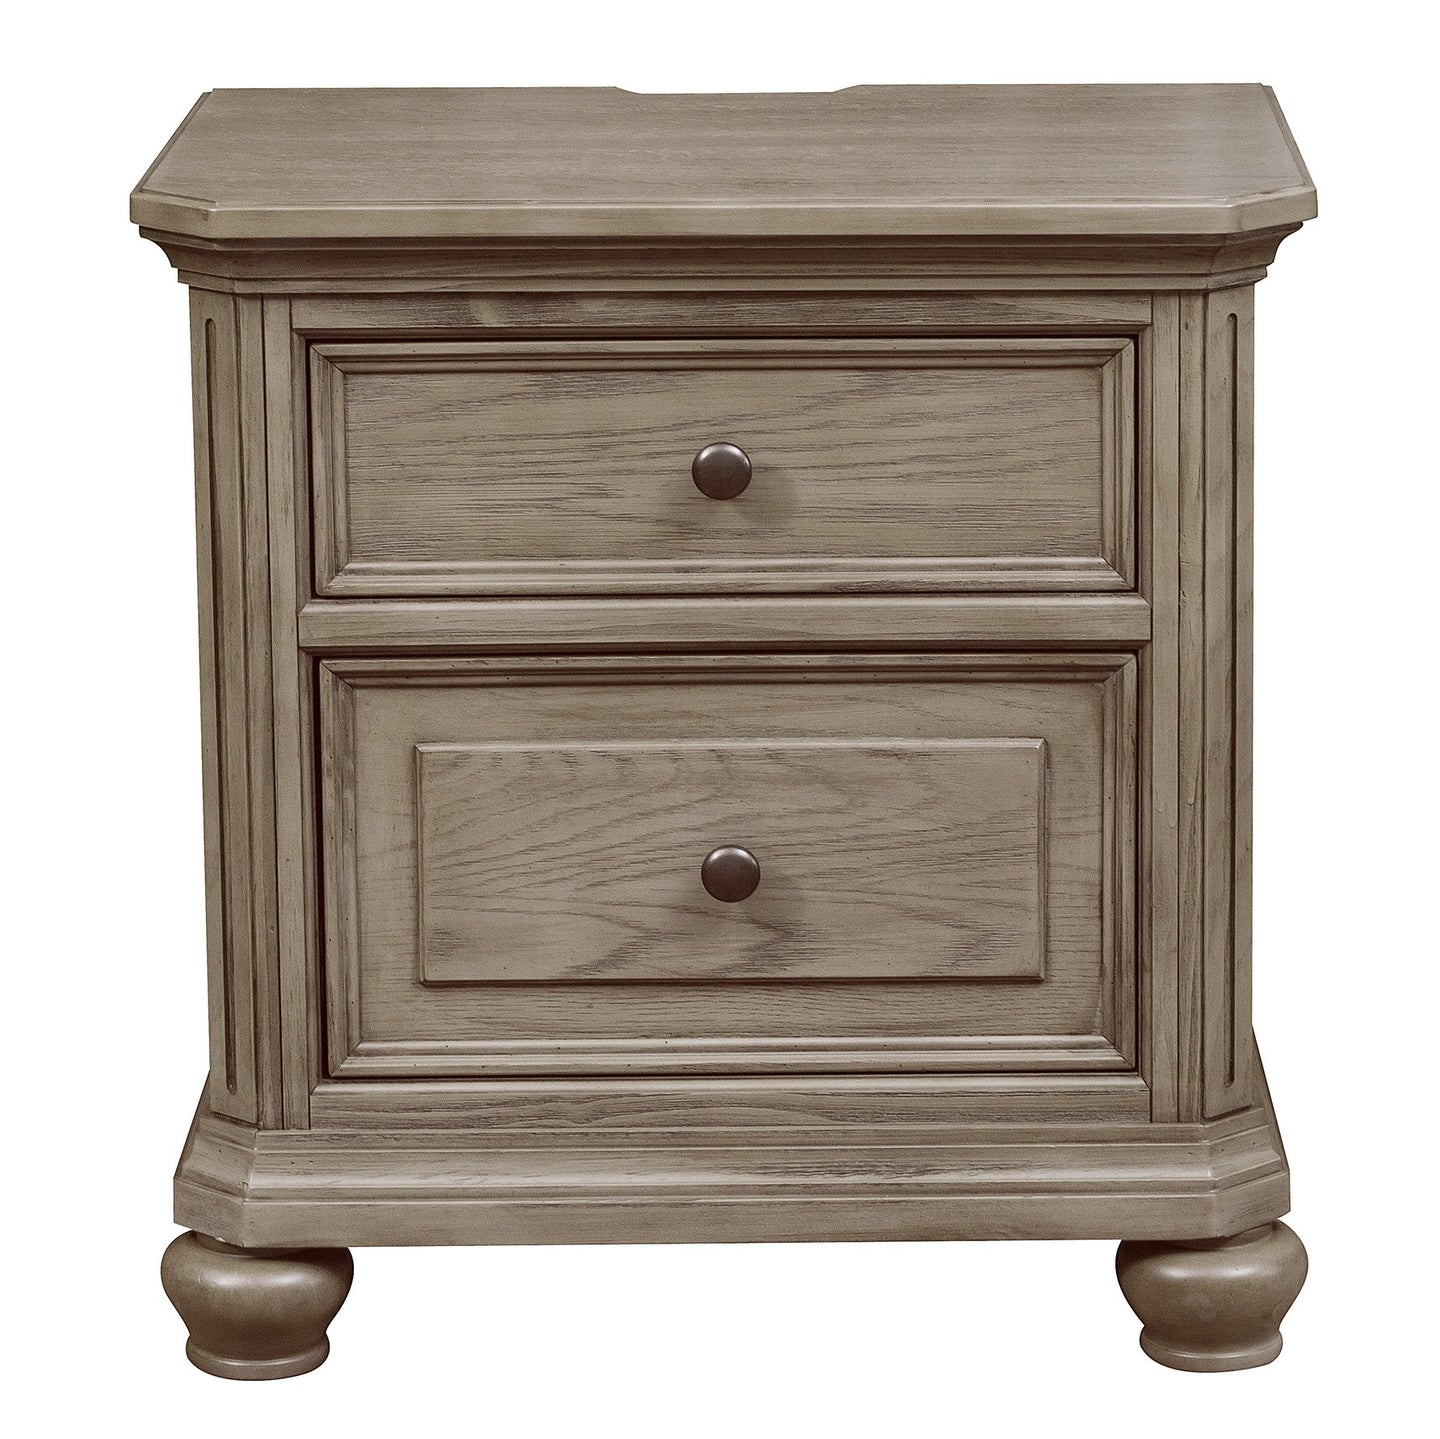 Homelegance Lavonia Gray Wood Finish Nightstand